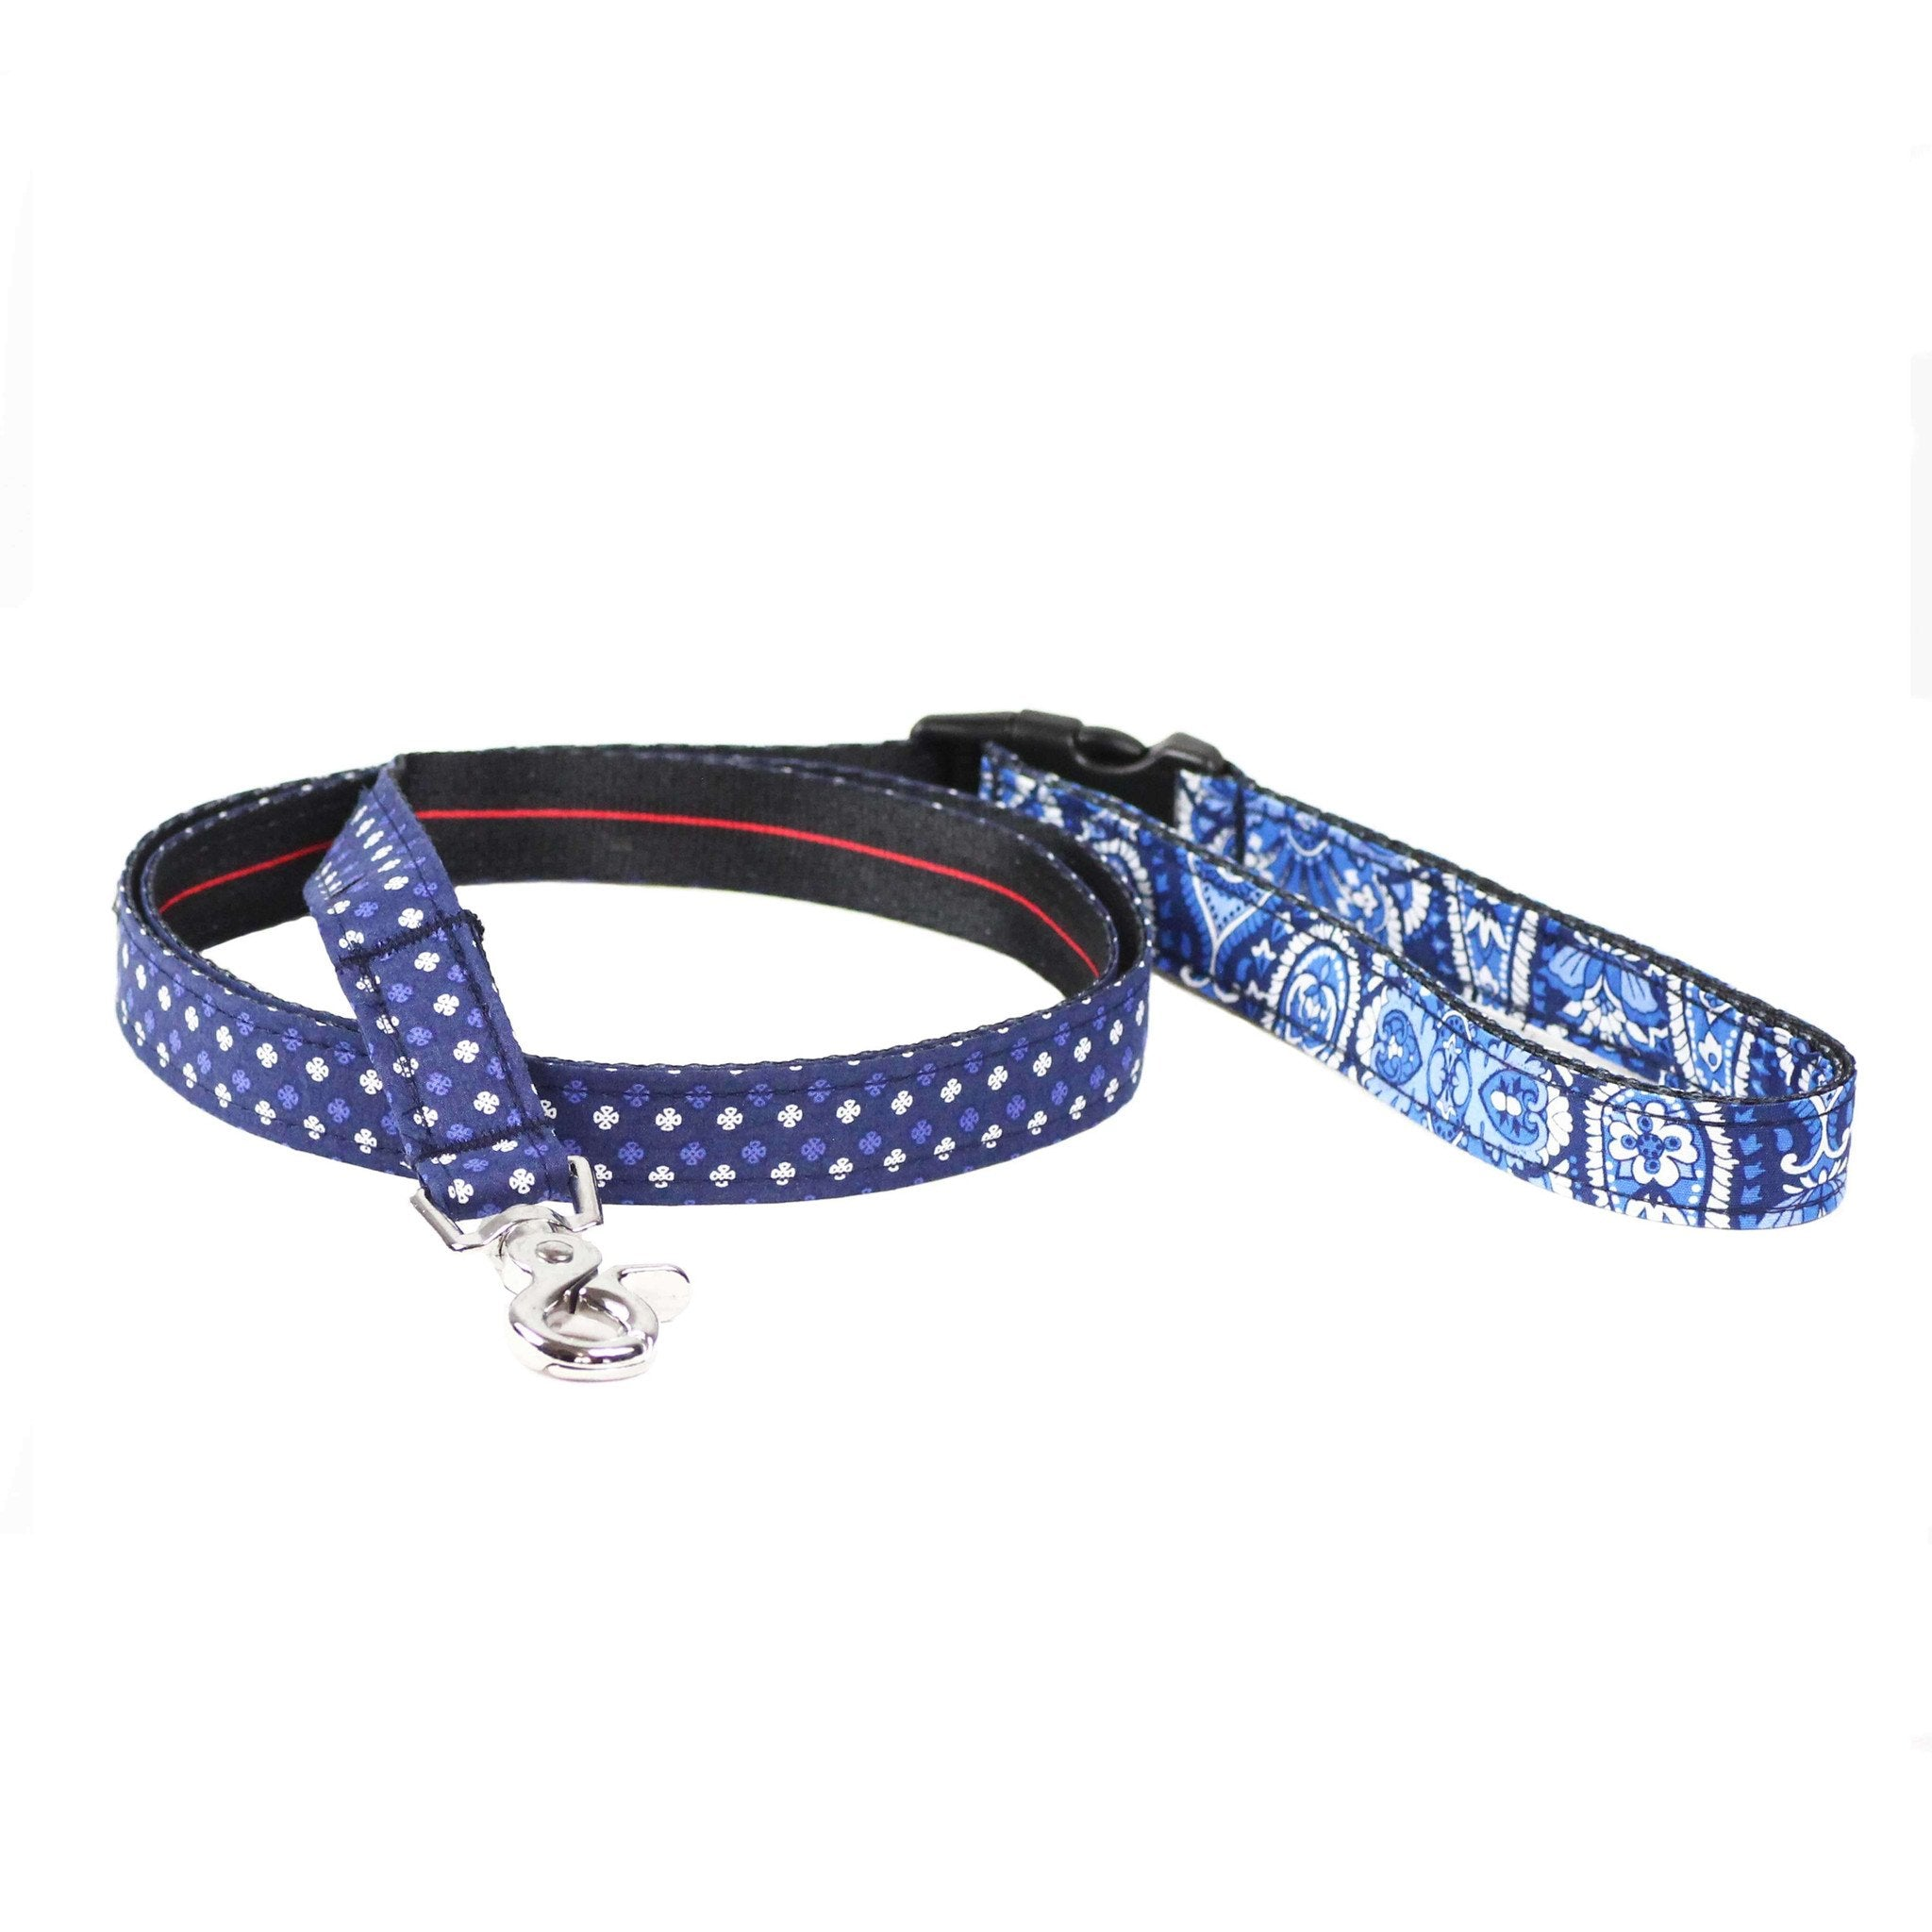 Dog Leash : Blue Mix and Match - Dharf - 1